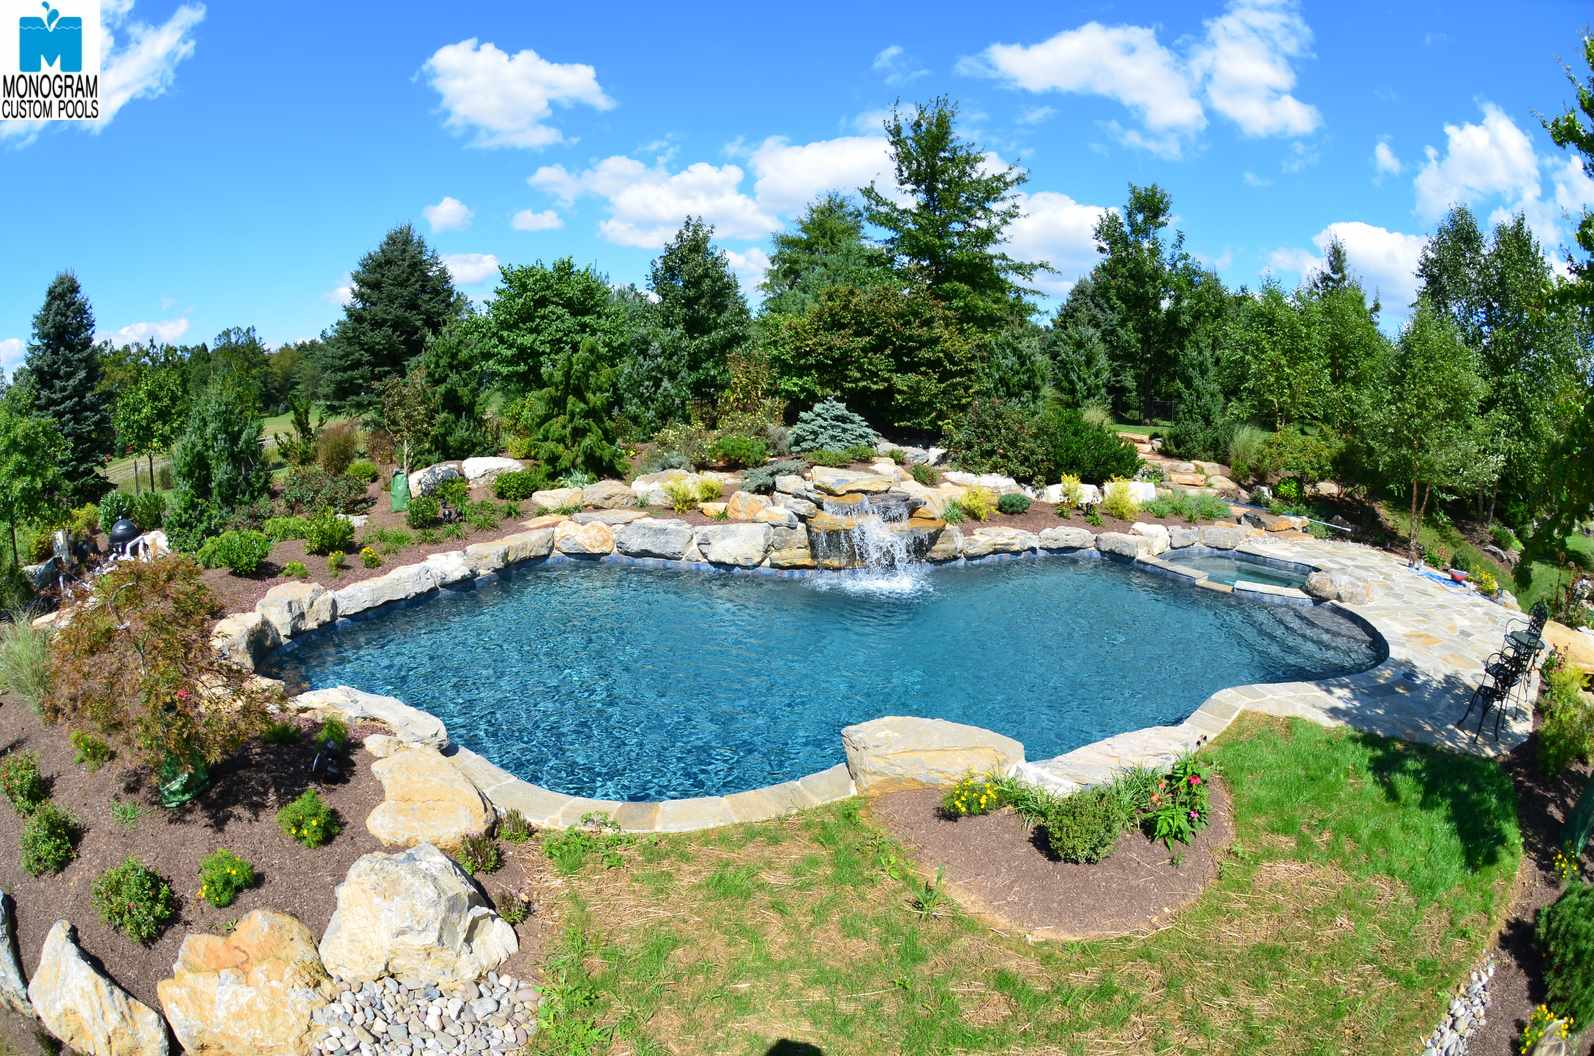 Pool Builder Lehigh Valley Pacustom Pool Builder Questions Lehigh Valley